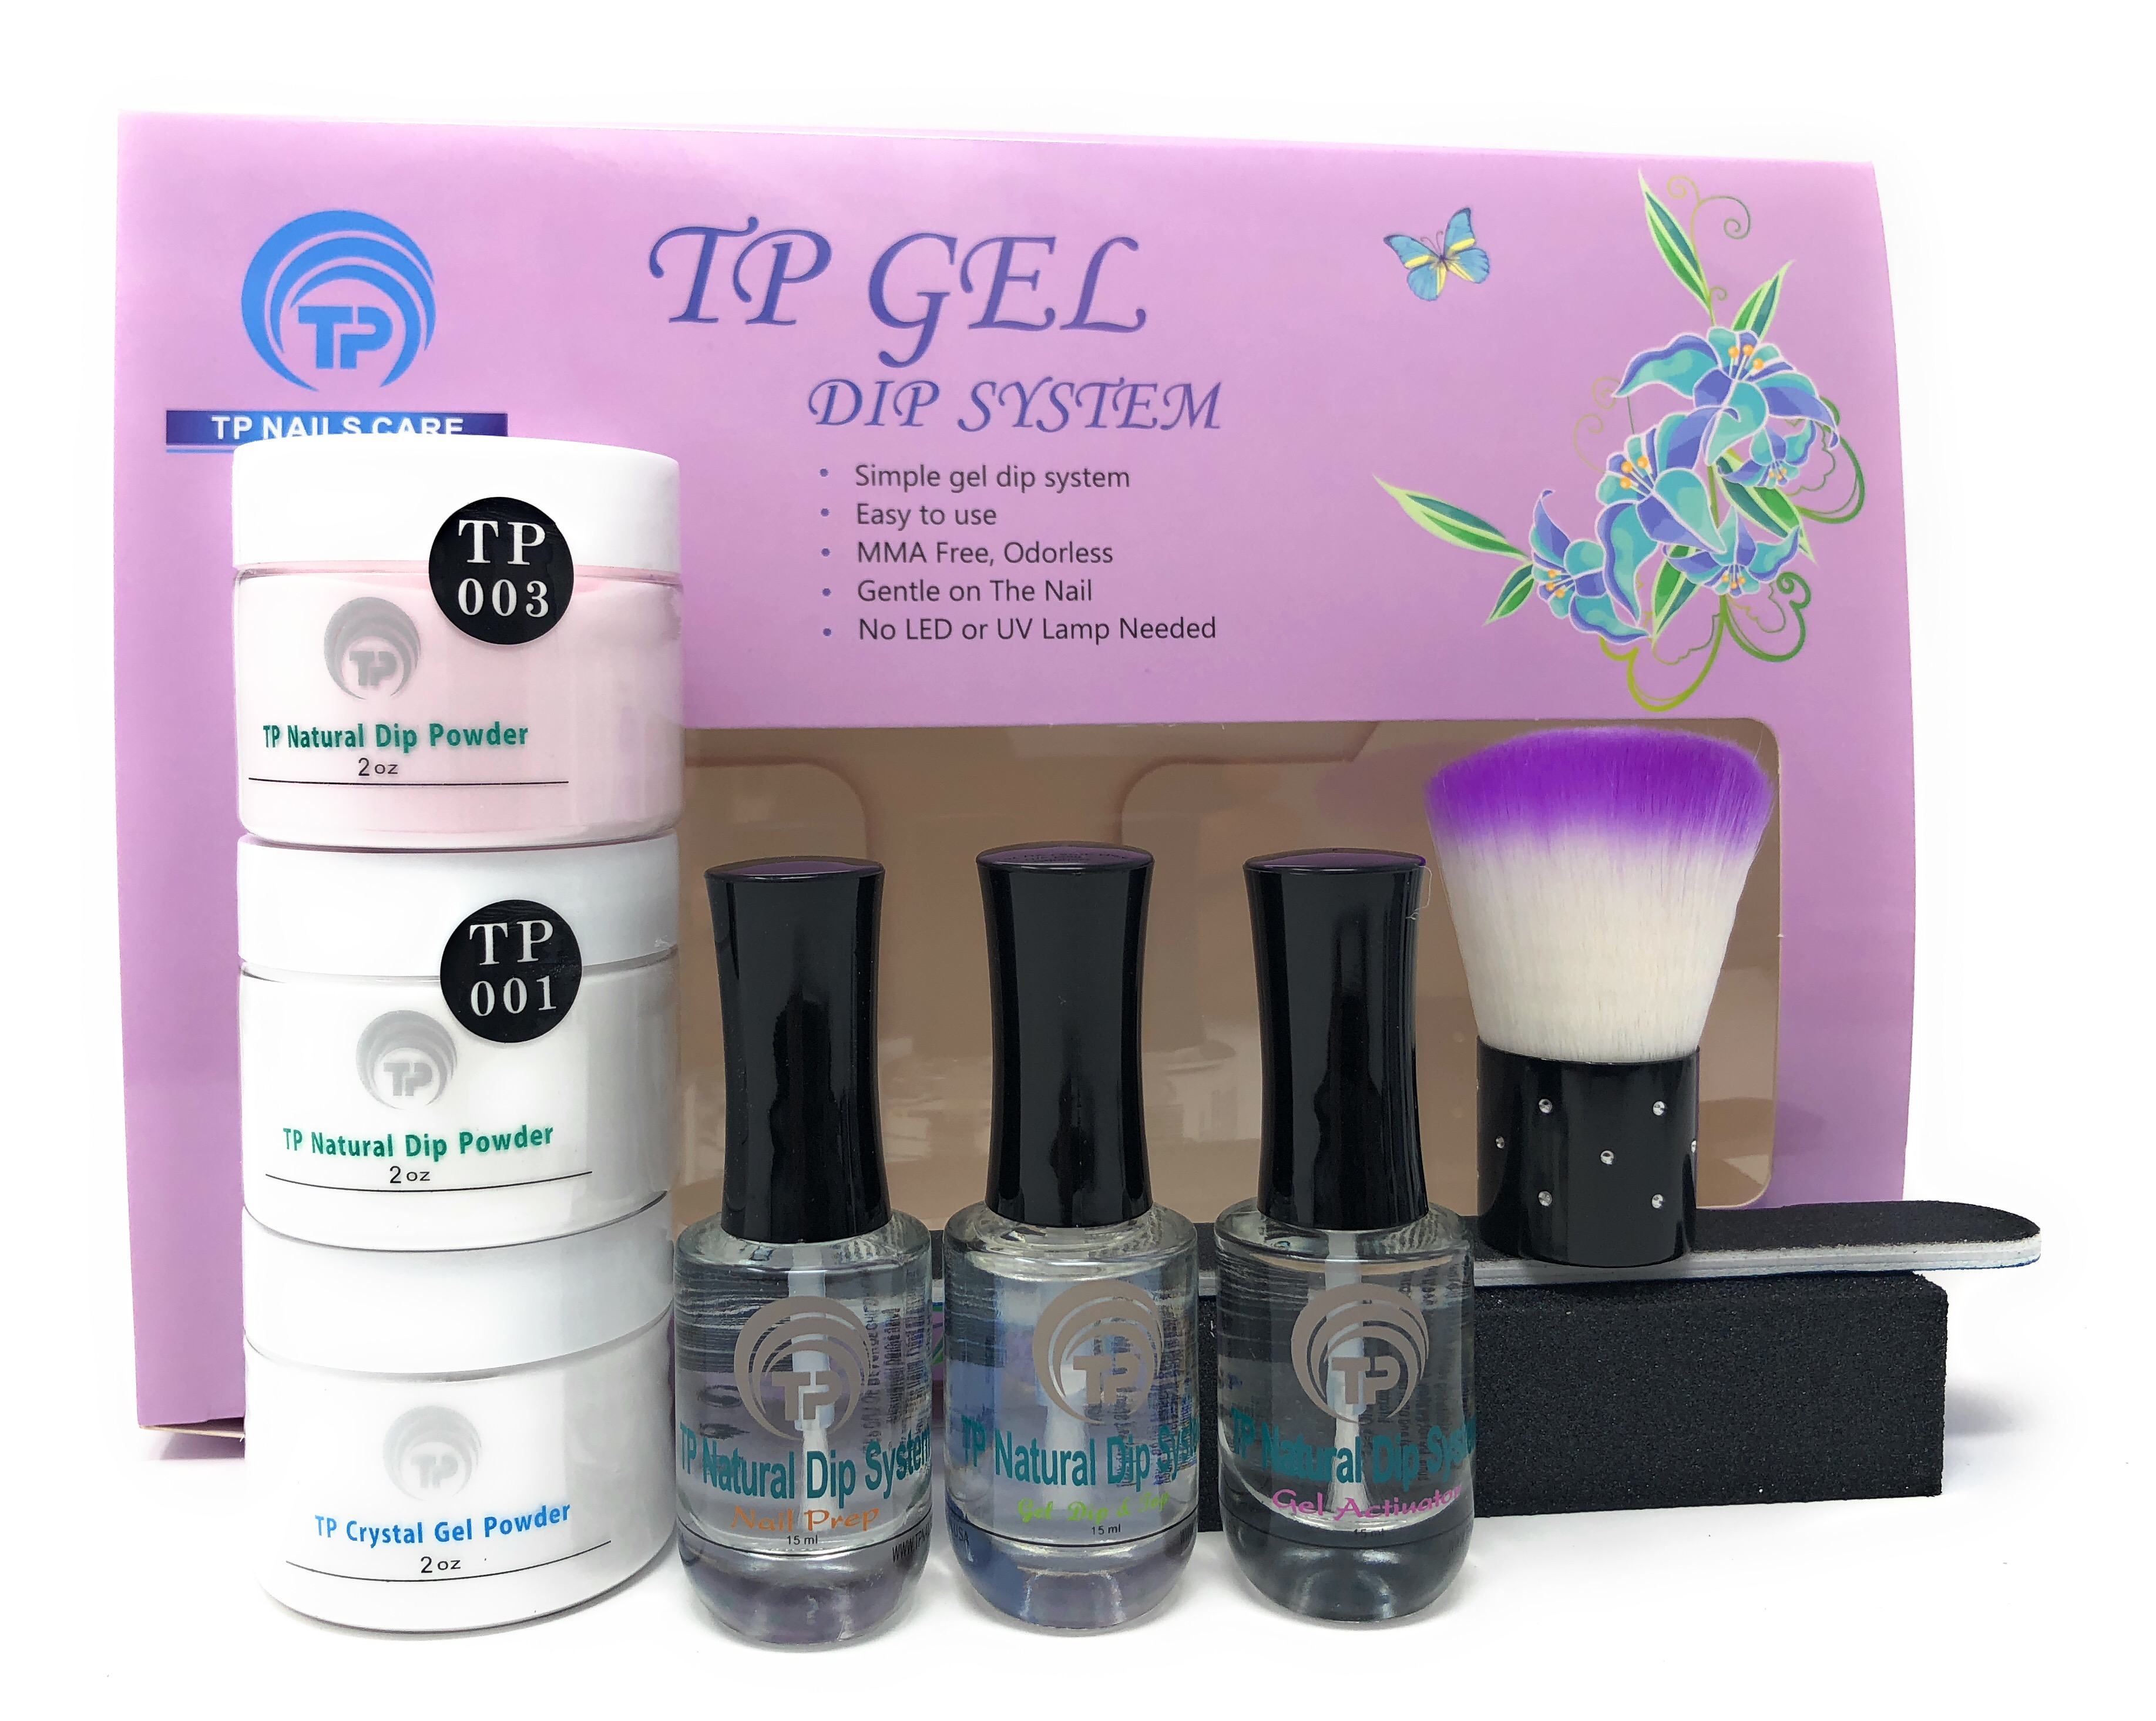 Dipping Powder Starter Kits, TP Nails Care - Ship in USA only